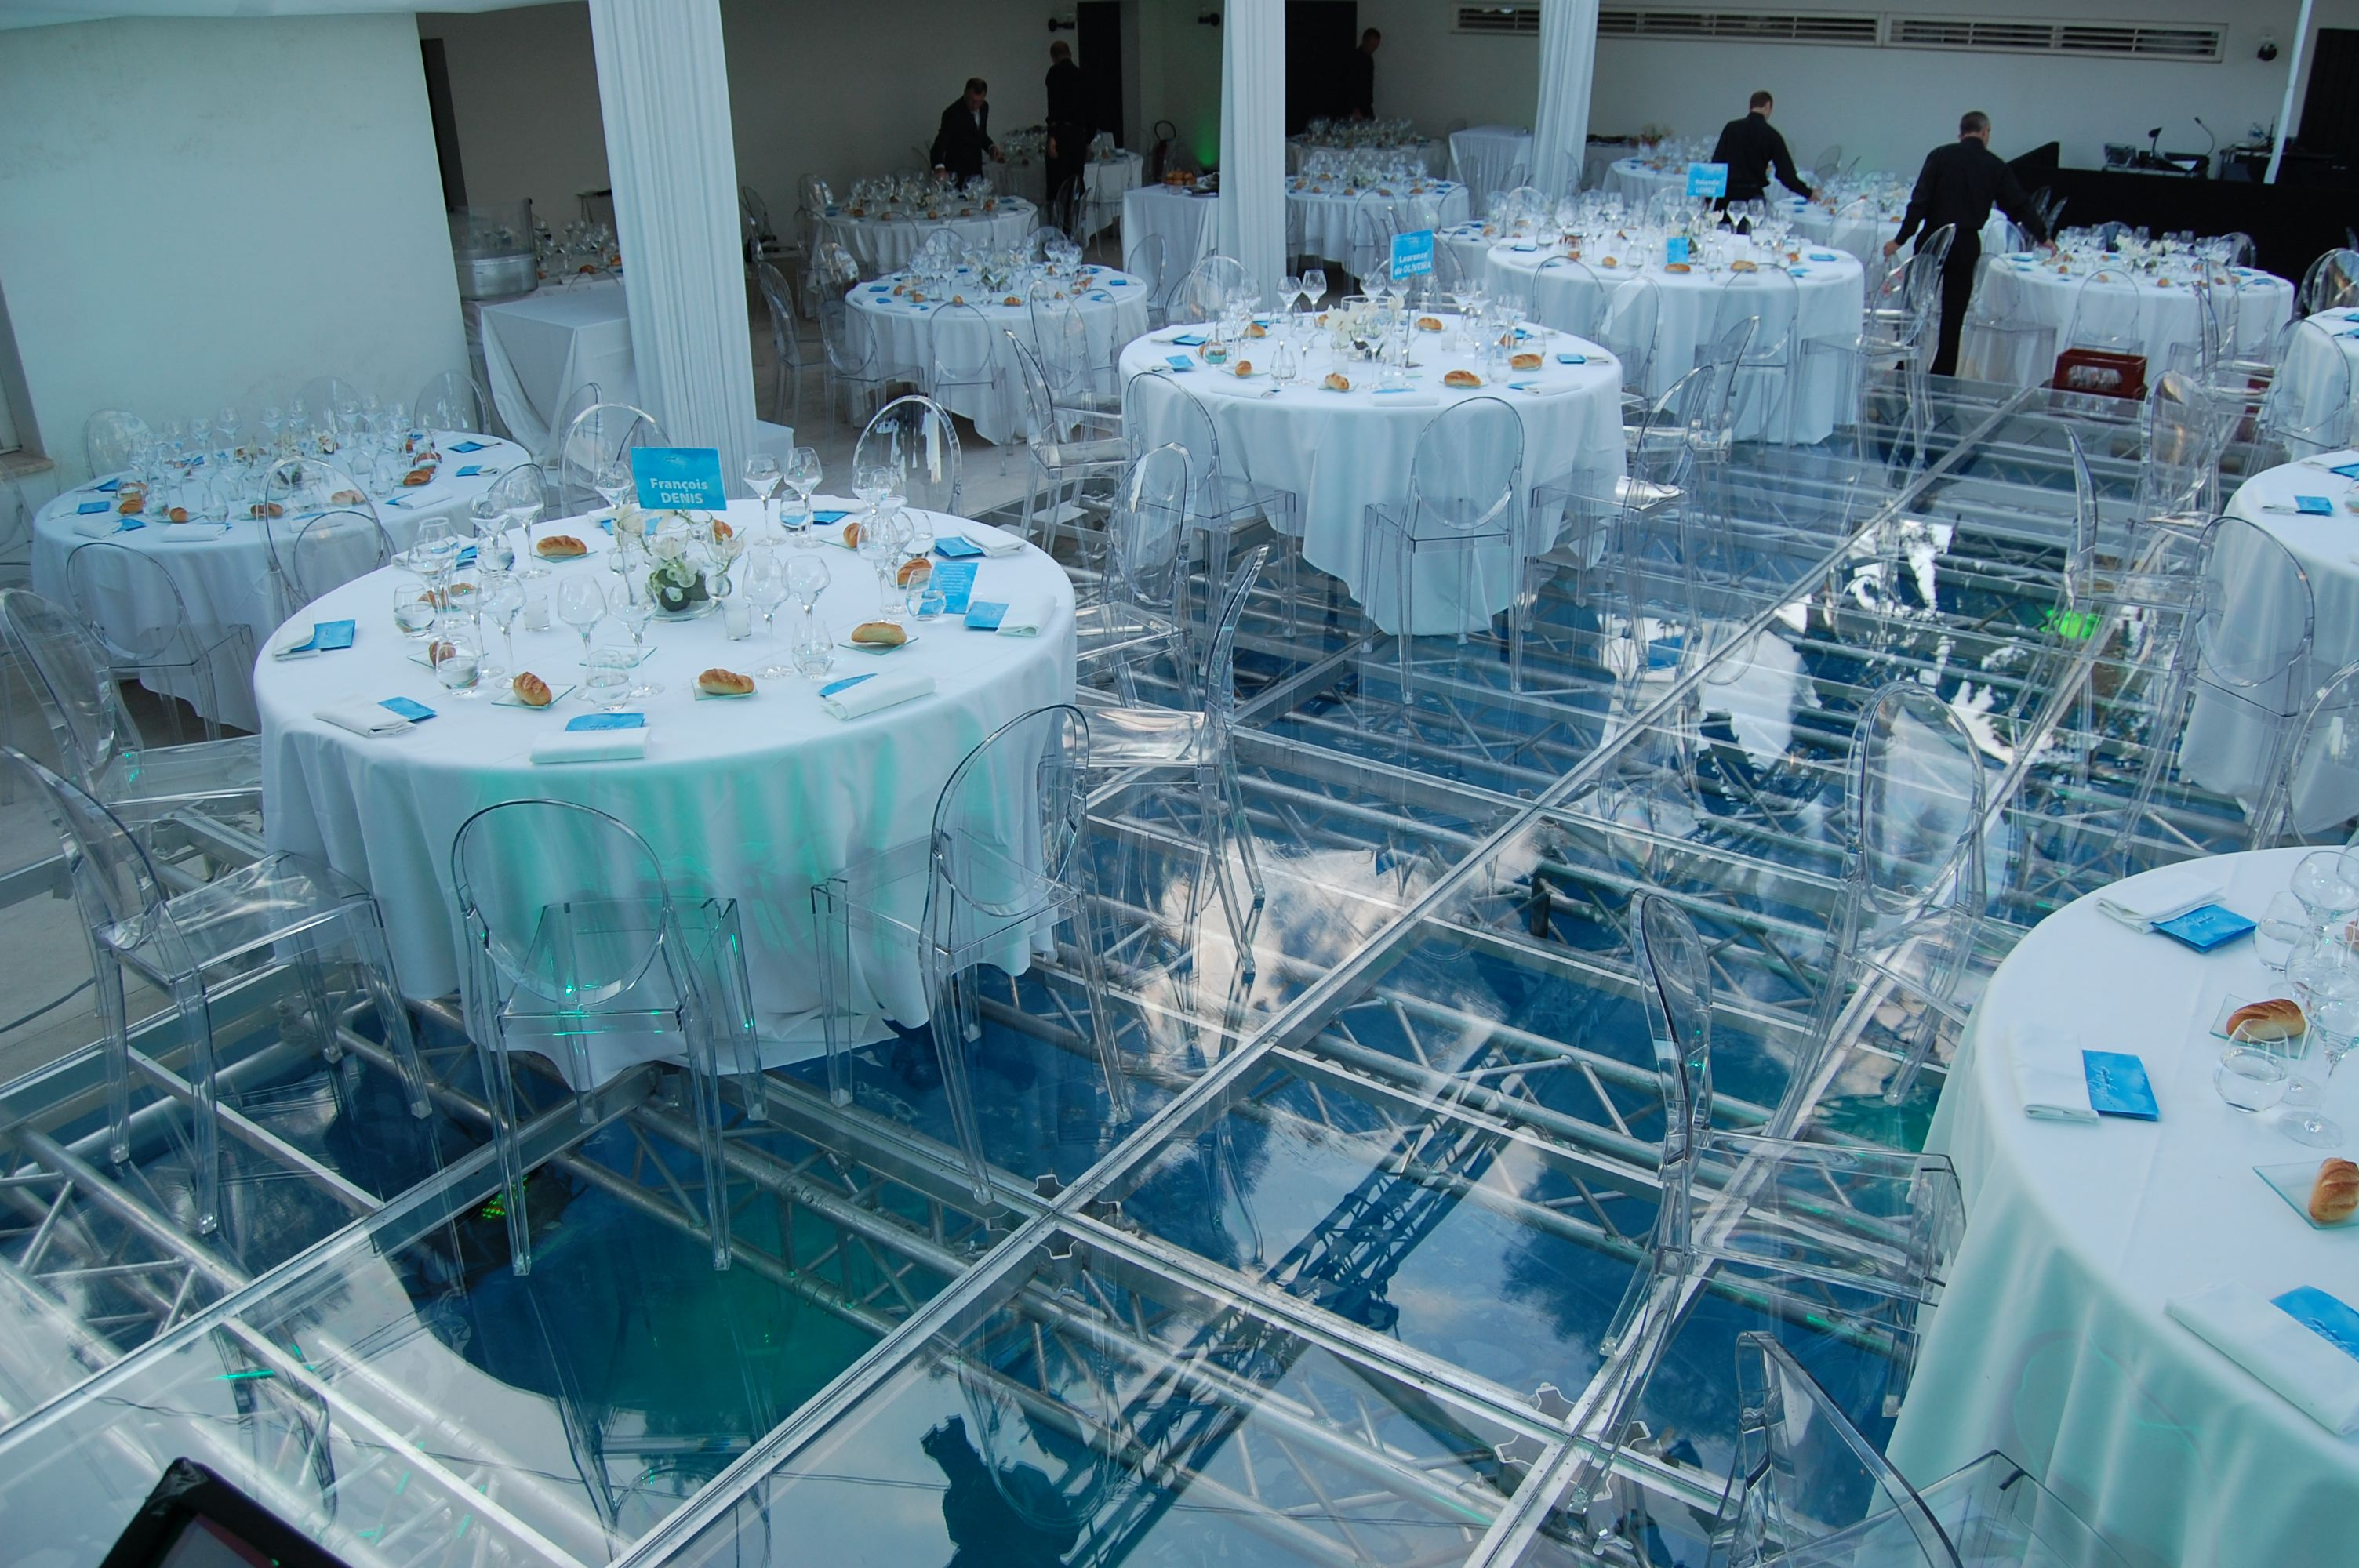 Acrylic Pool Cover Dance Floor Happy Party Event Rentals